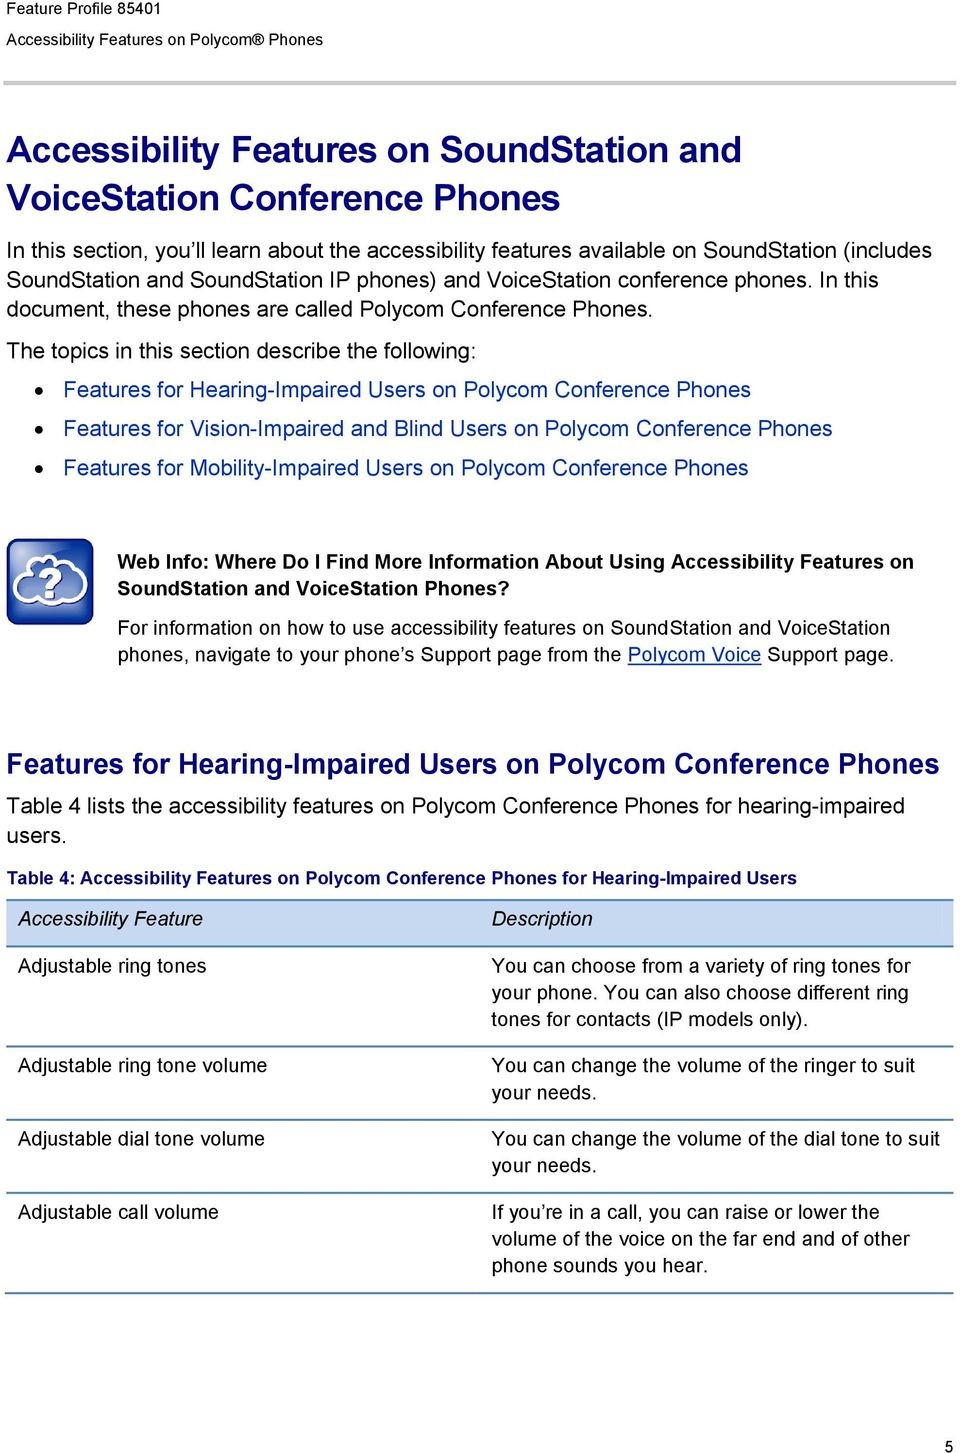 The topics in this section describe the following: Features for Hearing-Impaired Users on Polycom Conference Phones Features for Vision-Impaired and Blind Users on Polycom Conference Phones Features